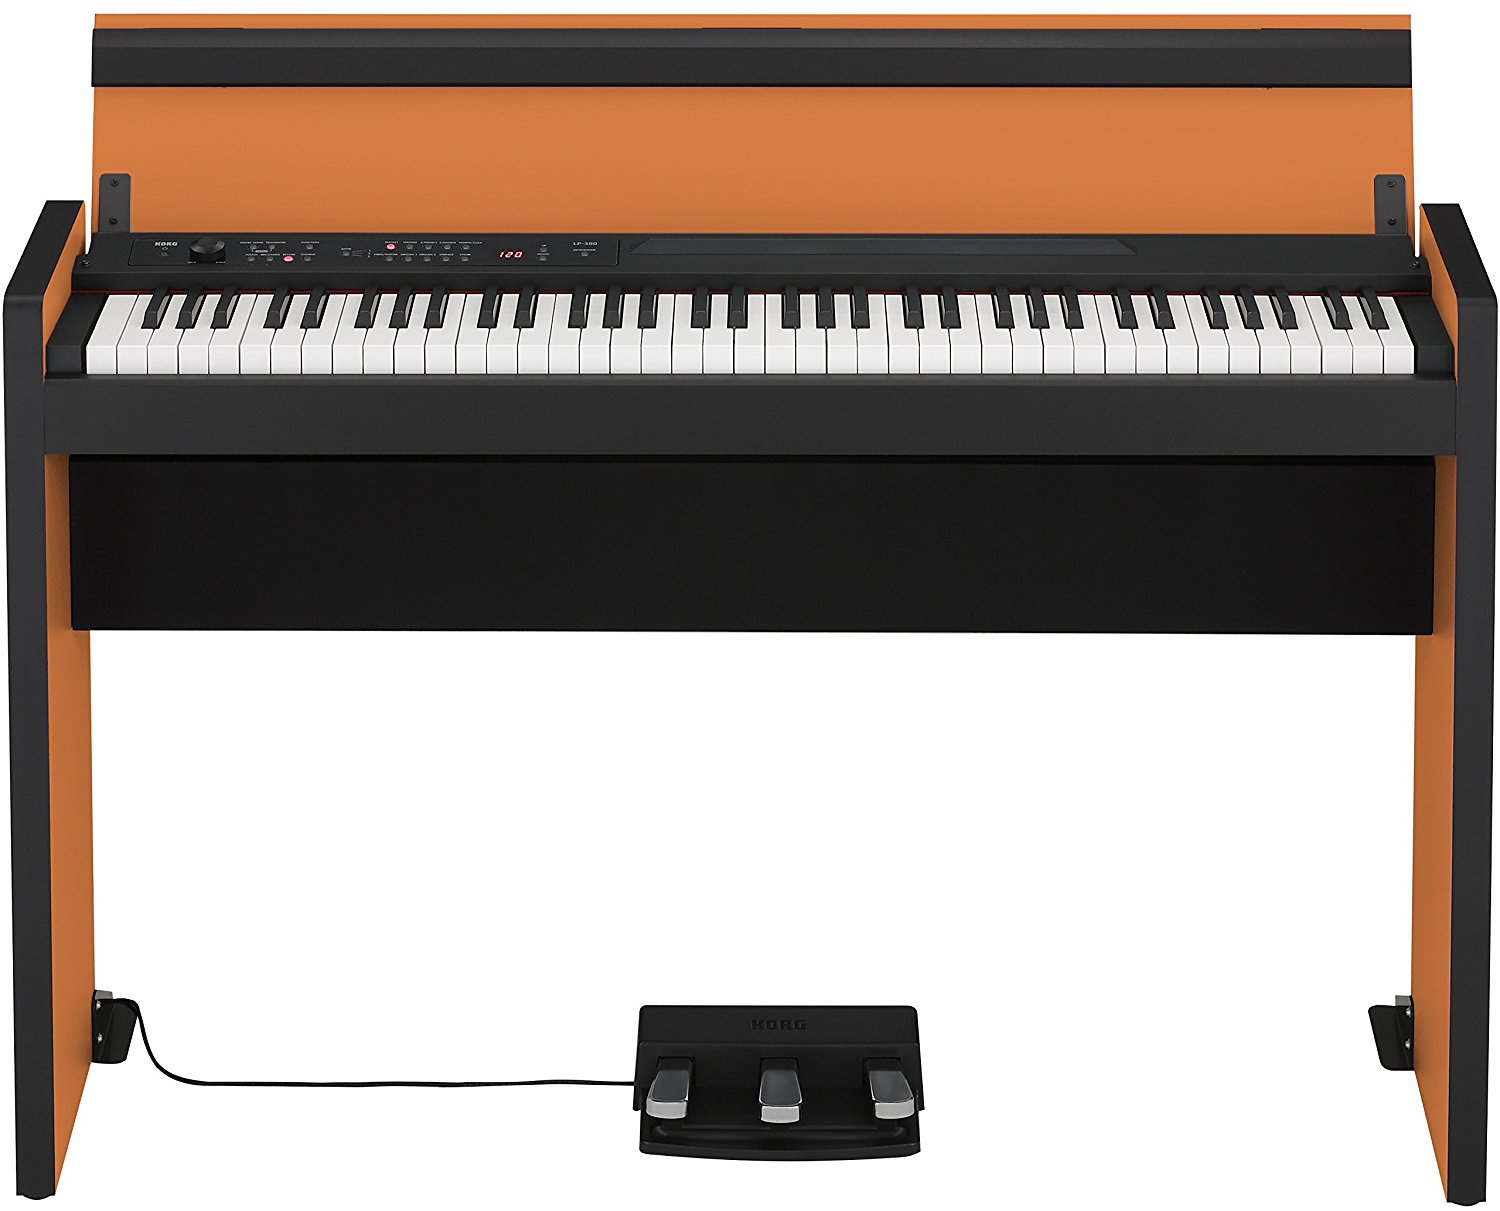 Best digital piano for church top 5 expert review and picks for Korg or yamaha digital piano